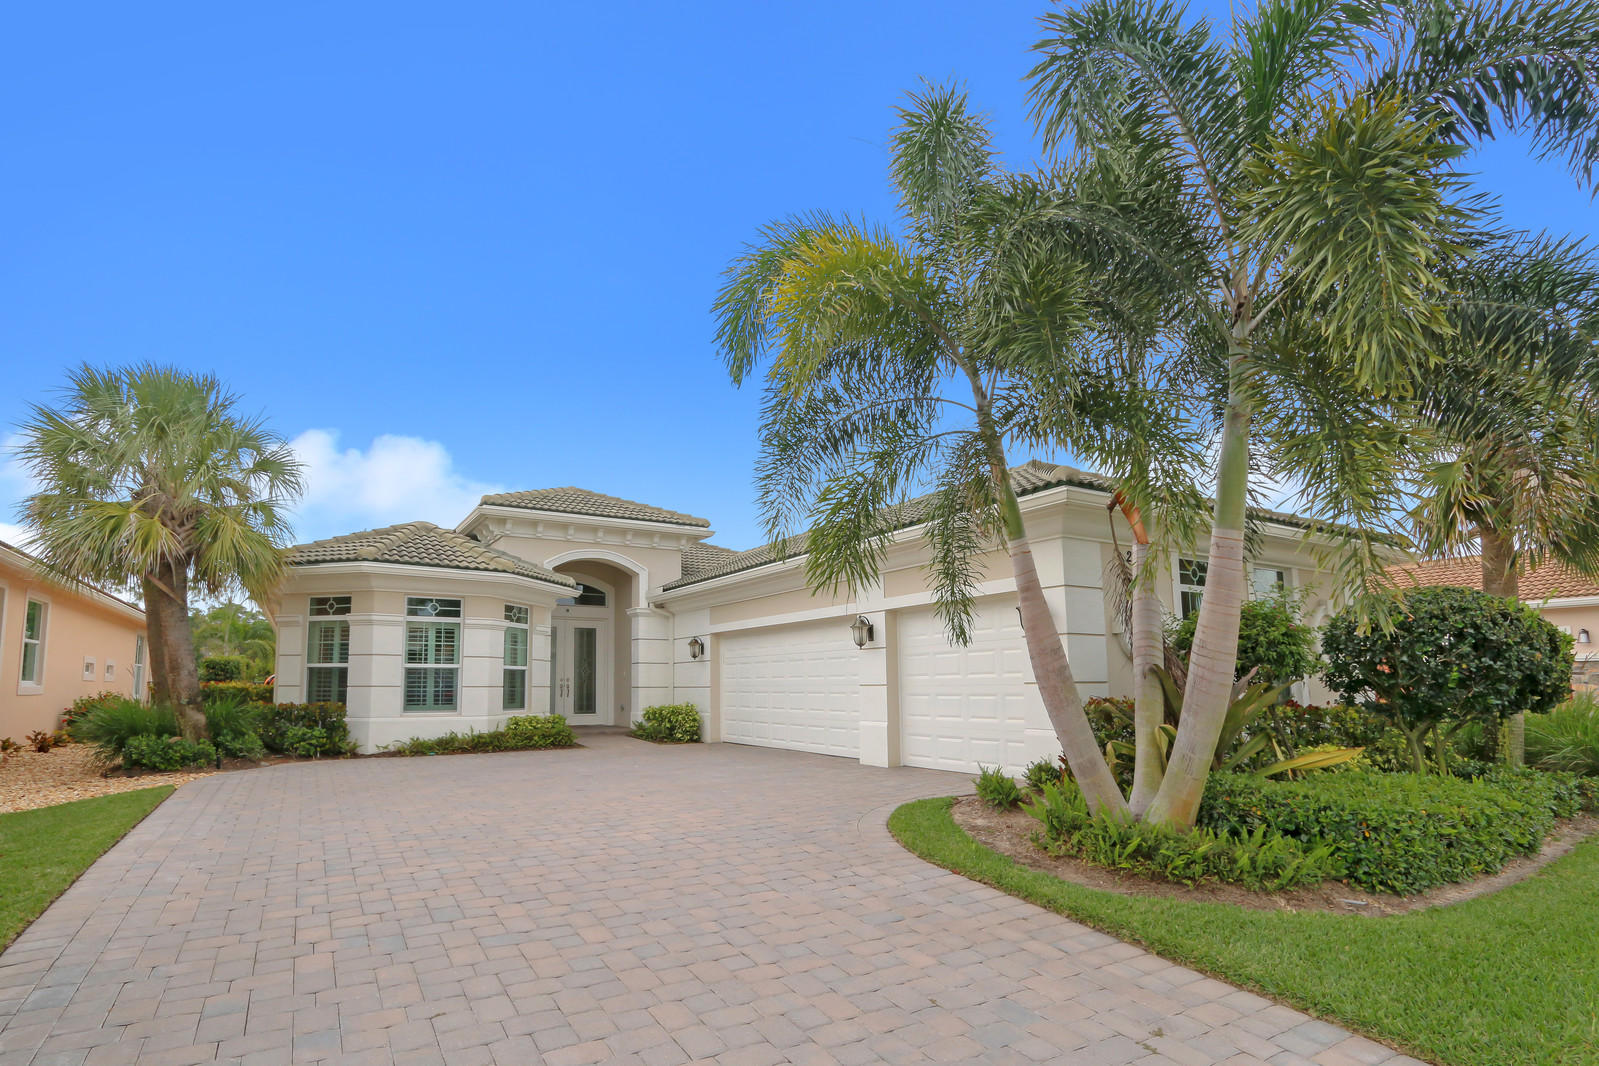 New Home for sale at 272 Carina Drive in Jupiter